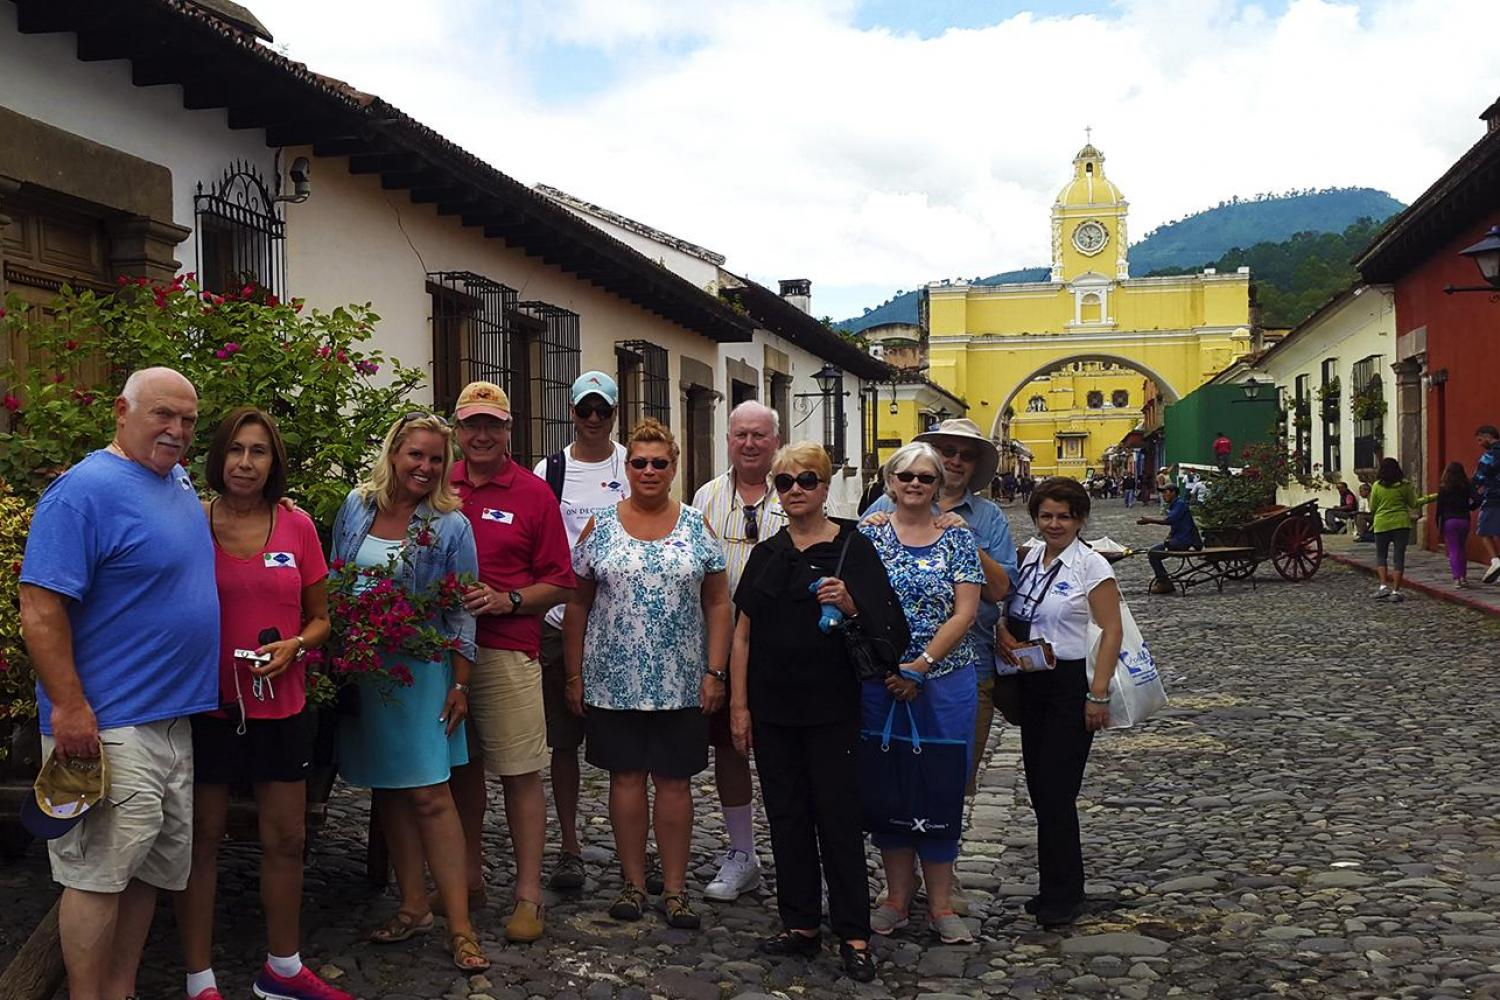 Antigua Guatemala & Surrounding Villas Full Day Tour from Antigua Guatemala